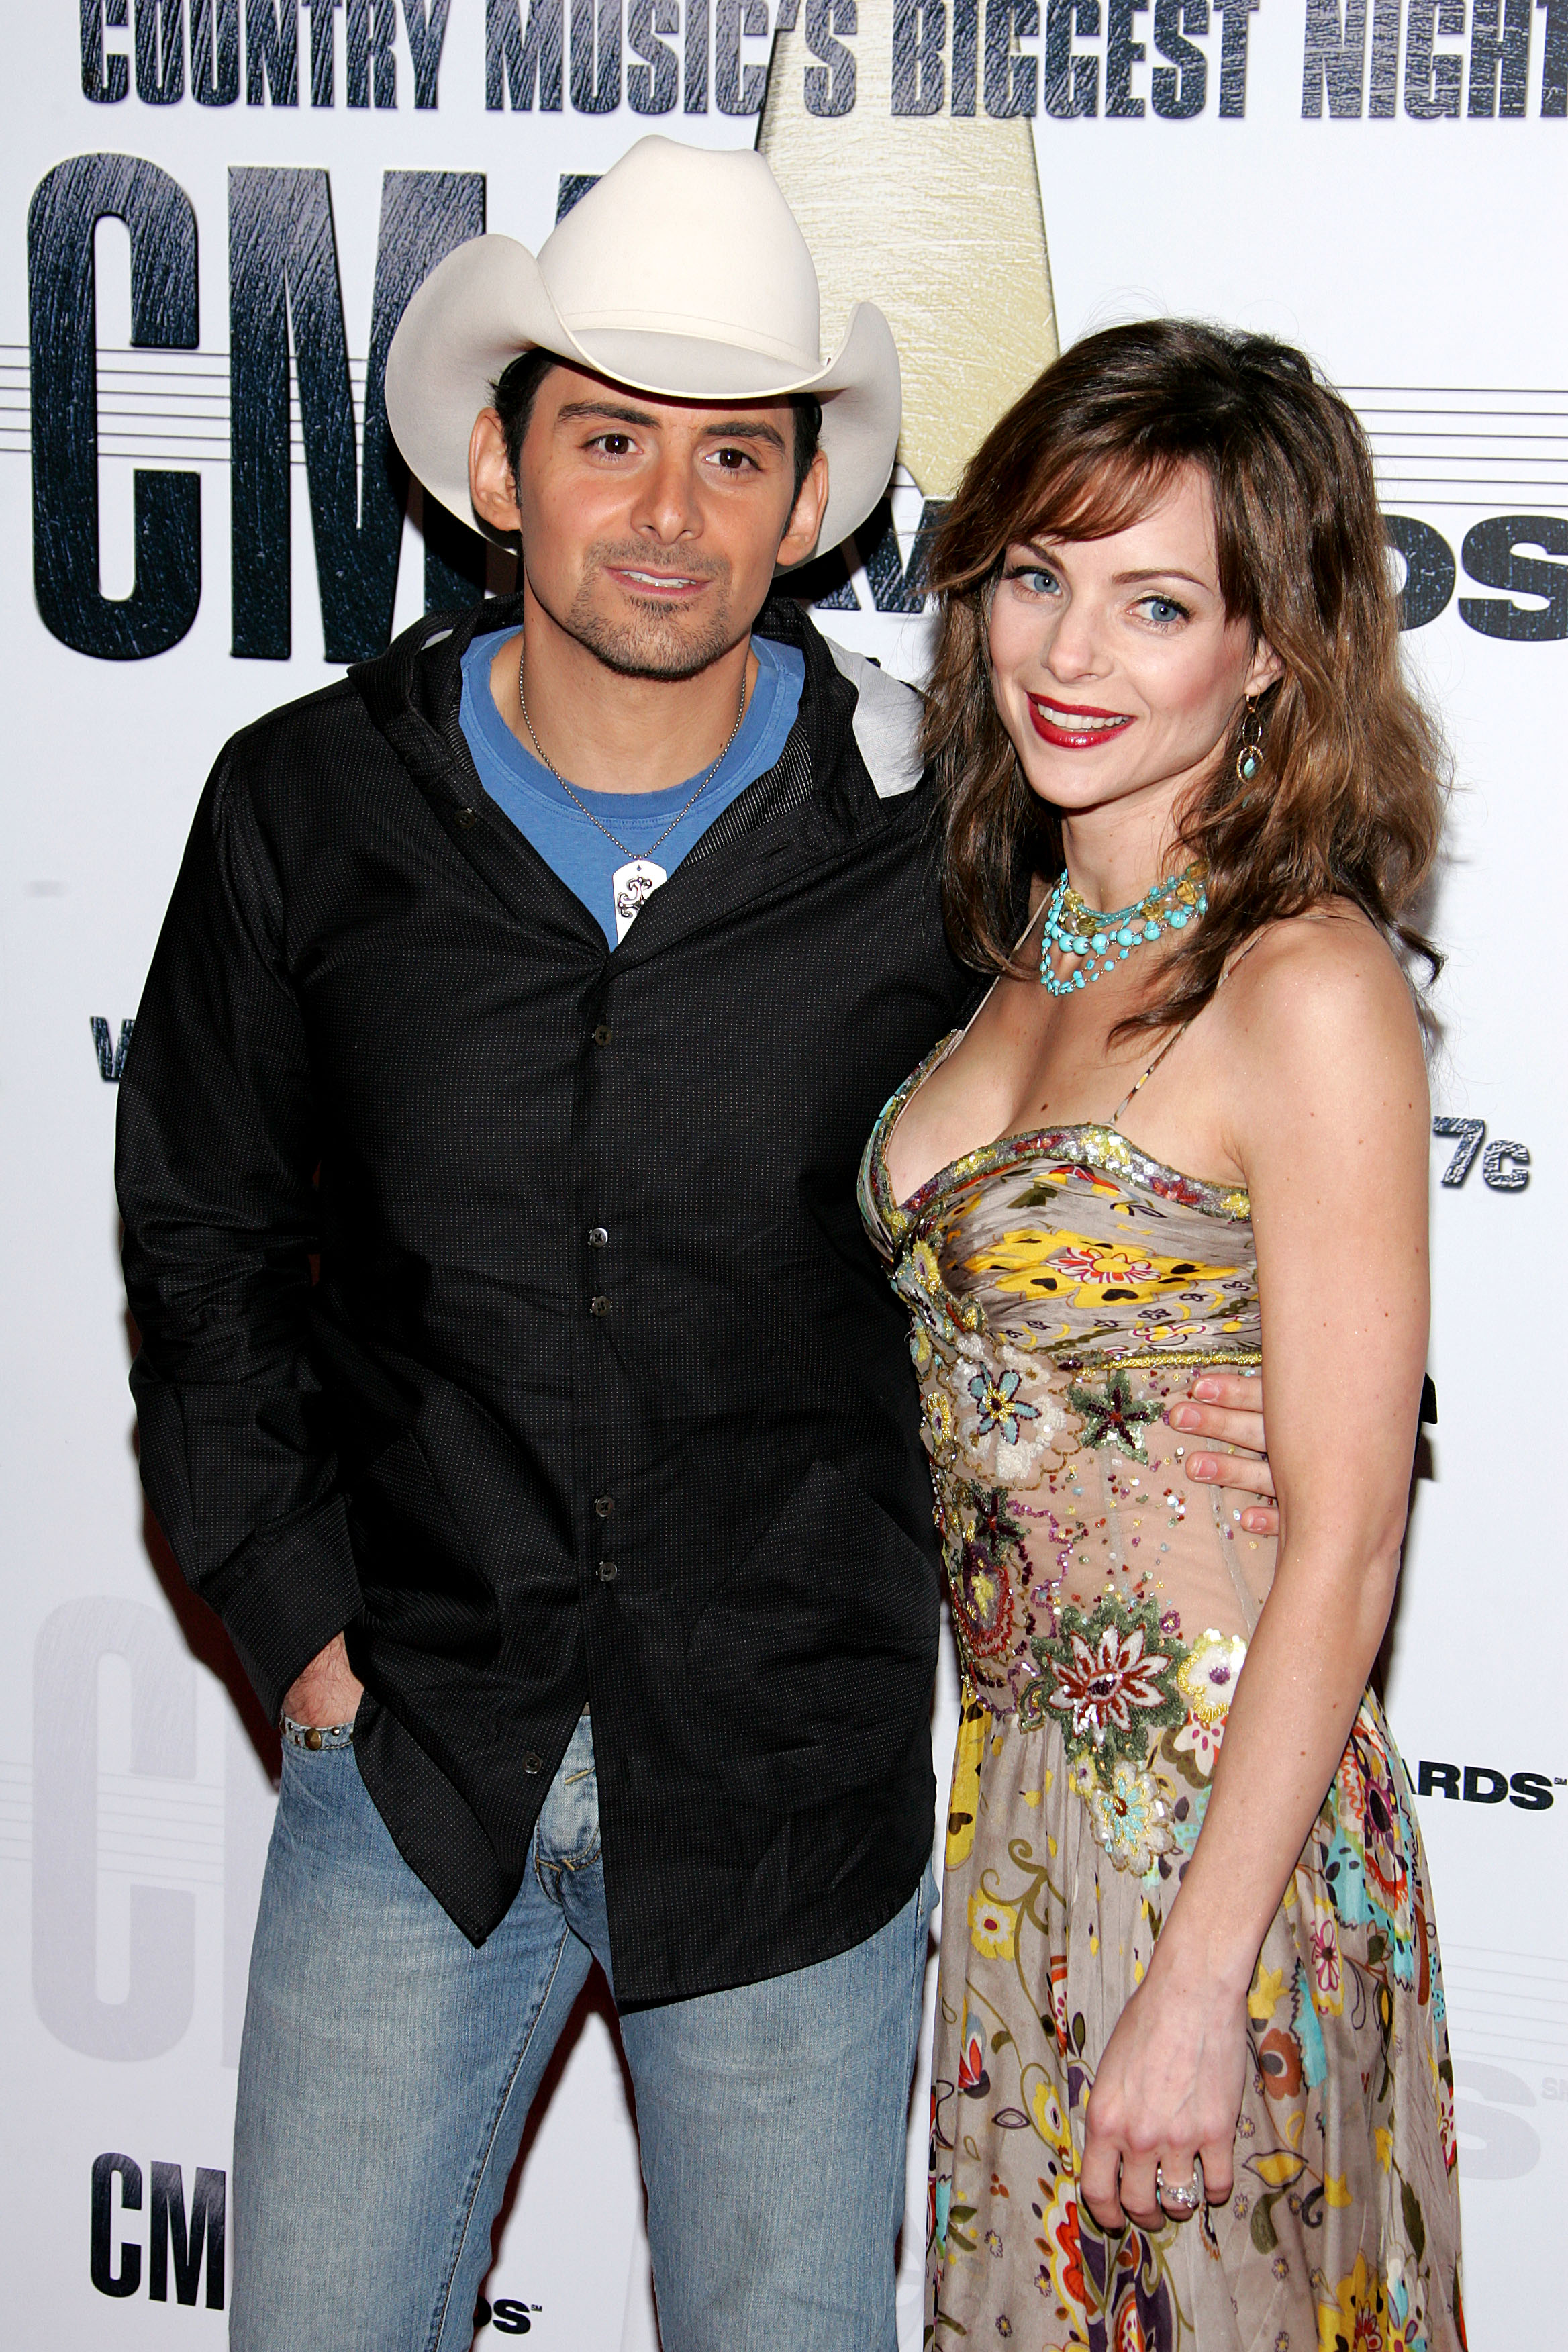 Brad Paisley and his wife Kimberly Williams-Paisley arrive at the 41st Annual CMA Awards at the Sommet Center on November 7, 2007 in Nashville, Tennessee; Photo by Bryan Bedder/Getty Images